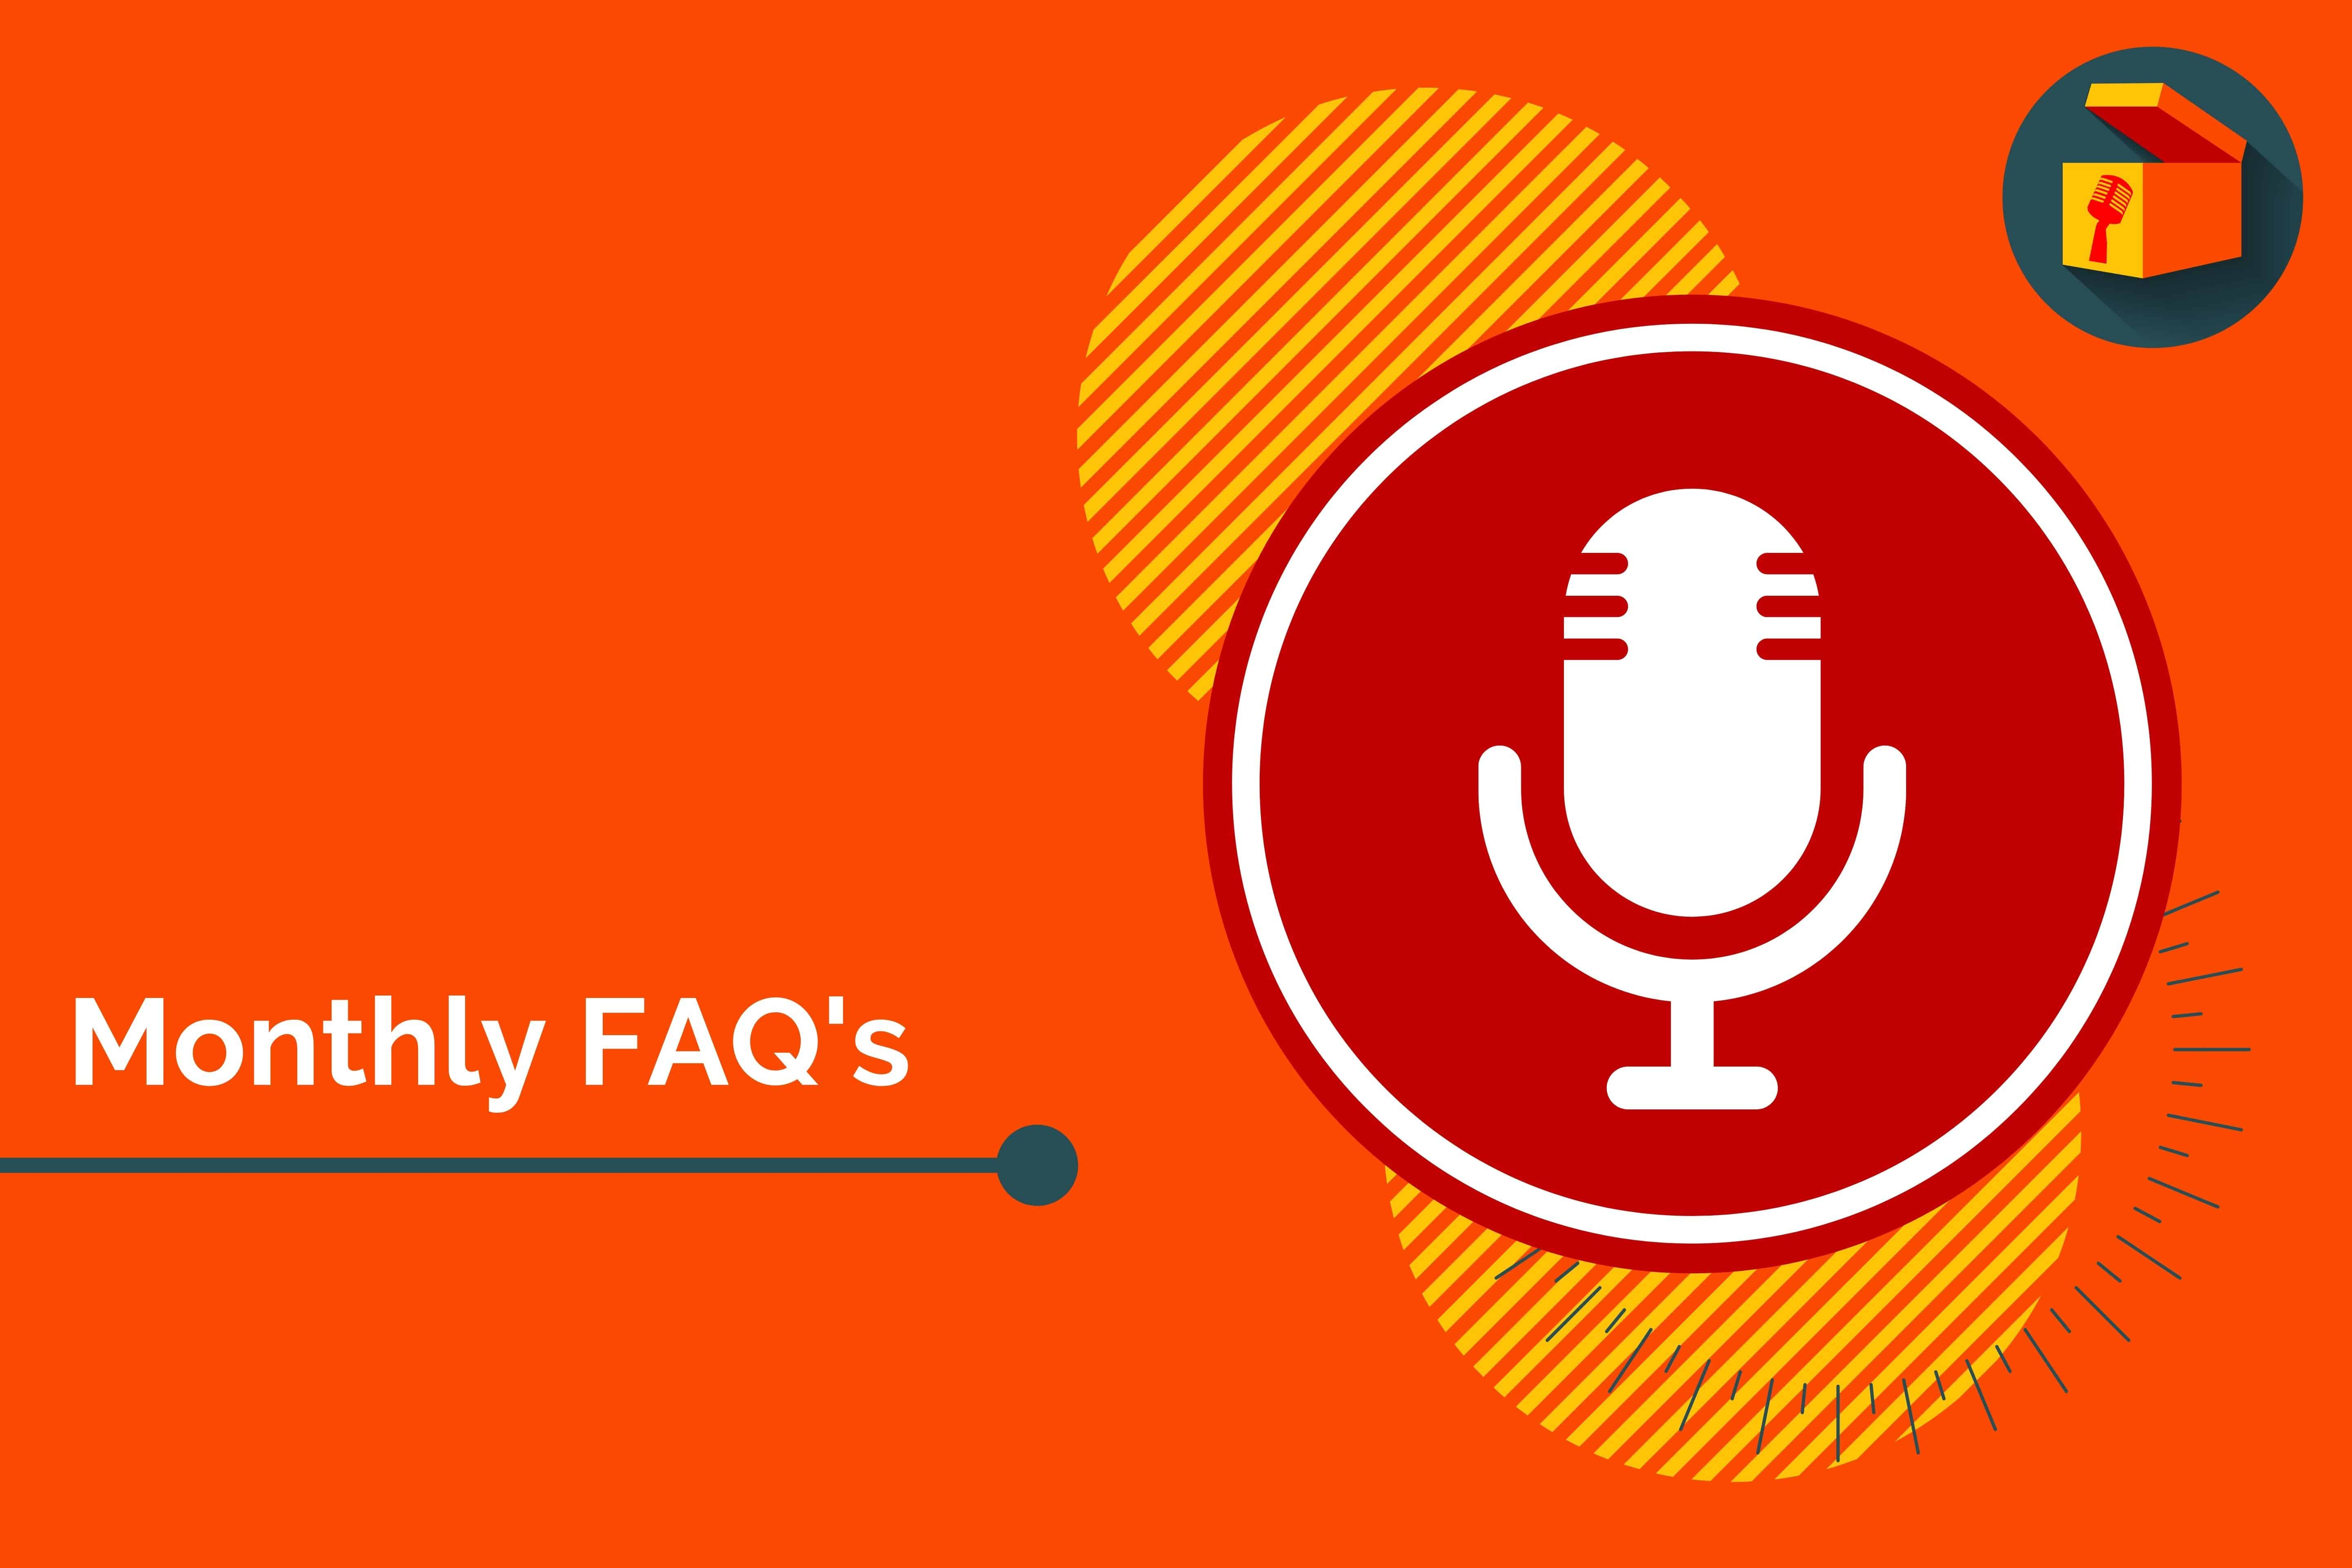 July Monthly FAQ's